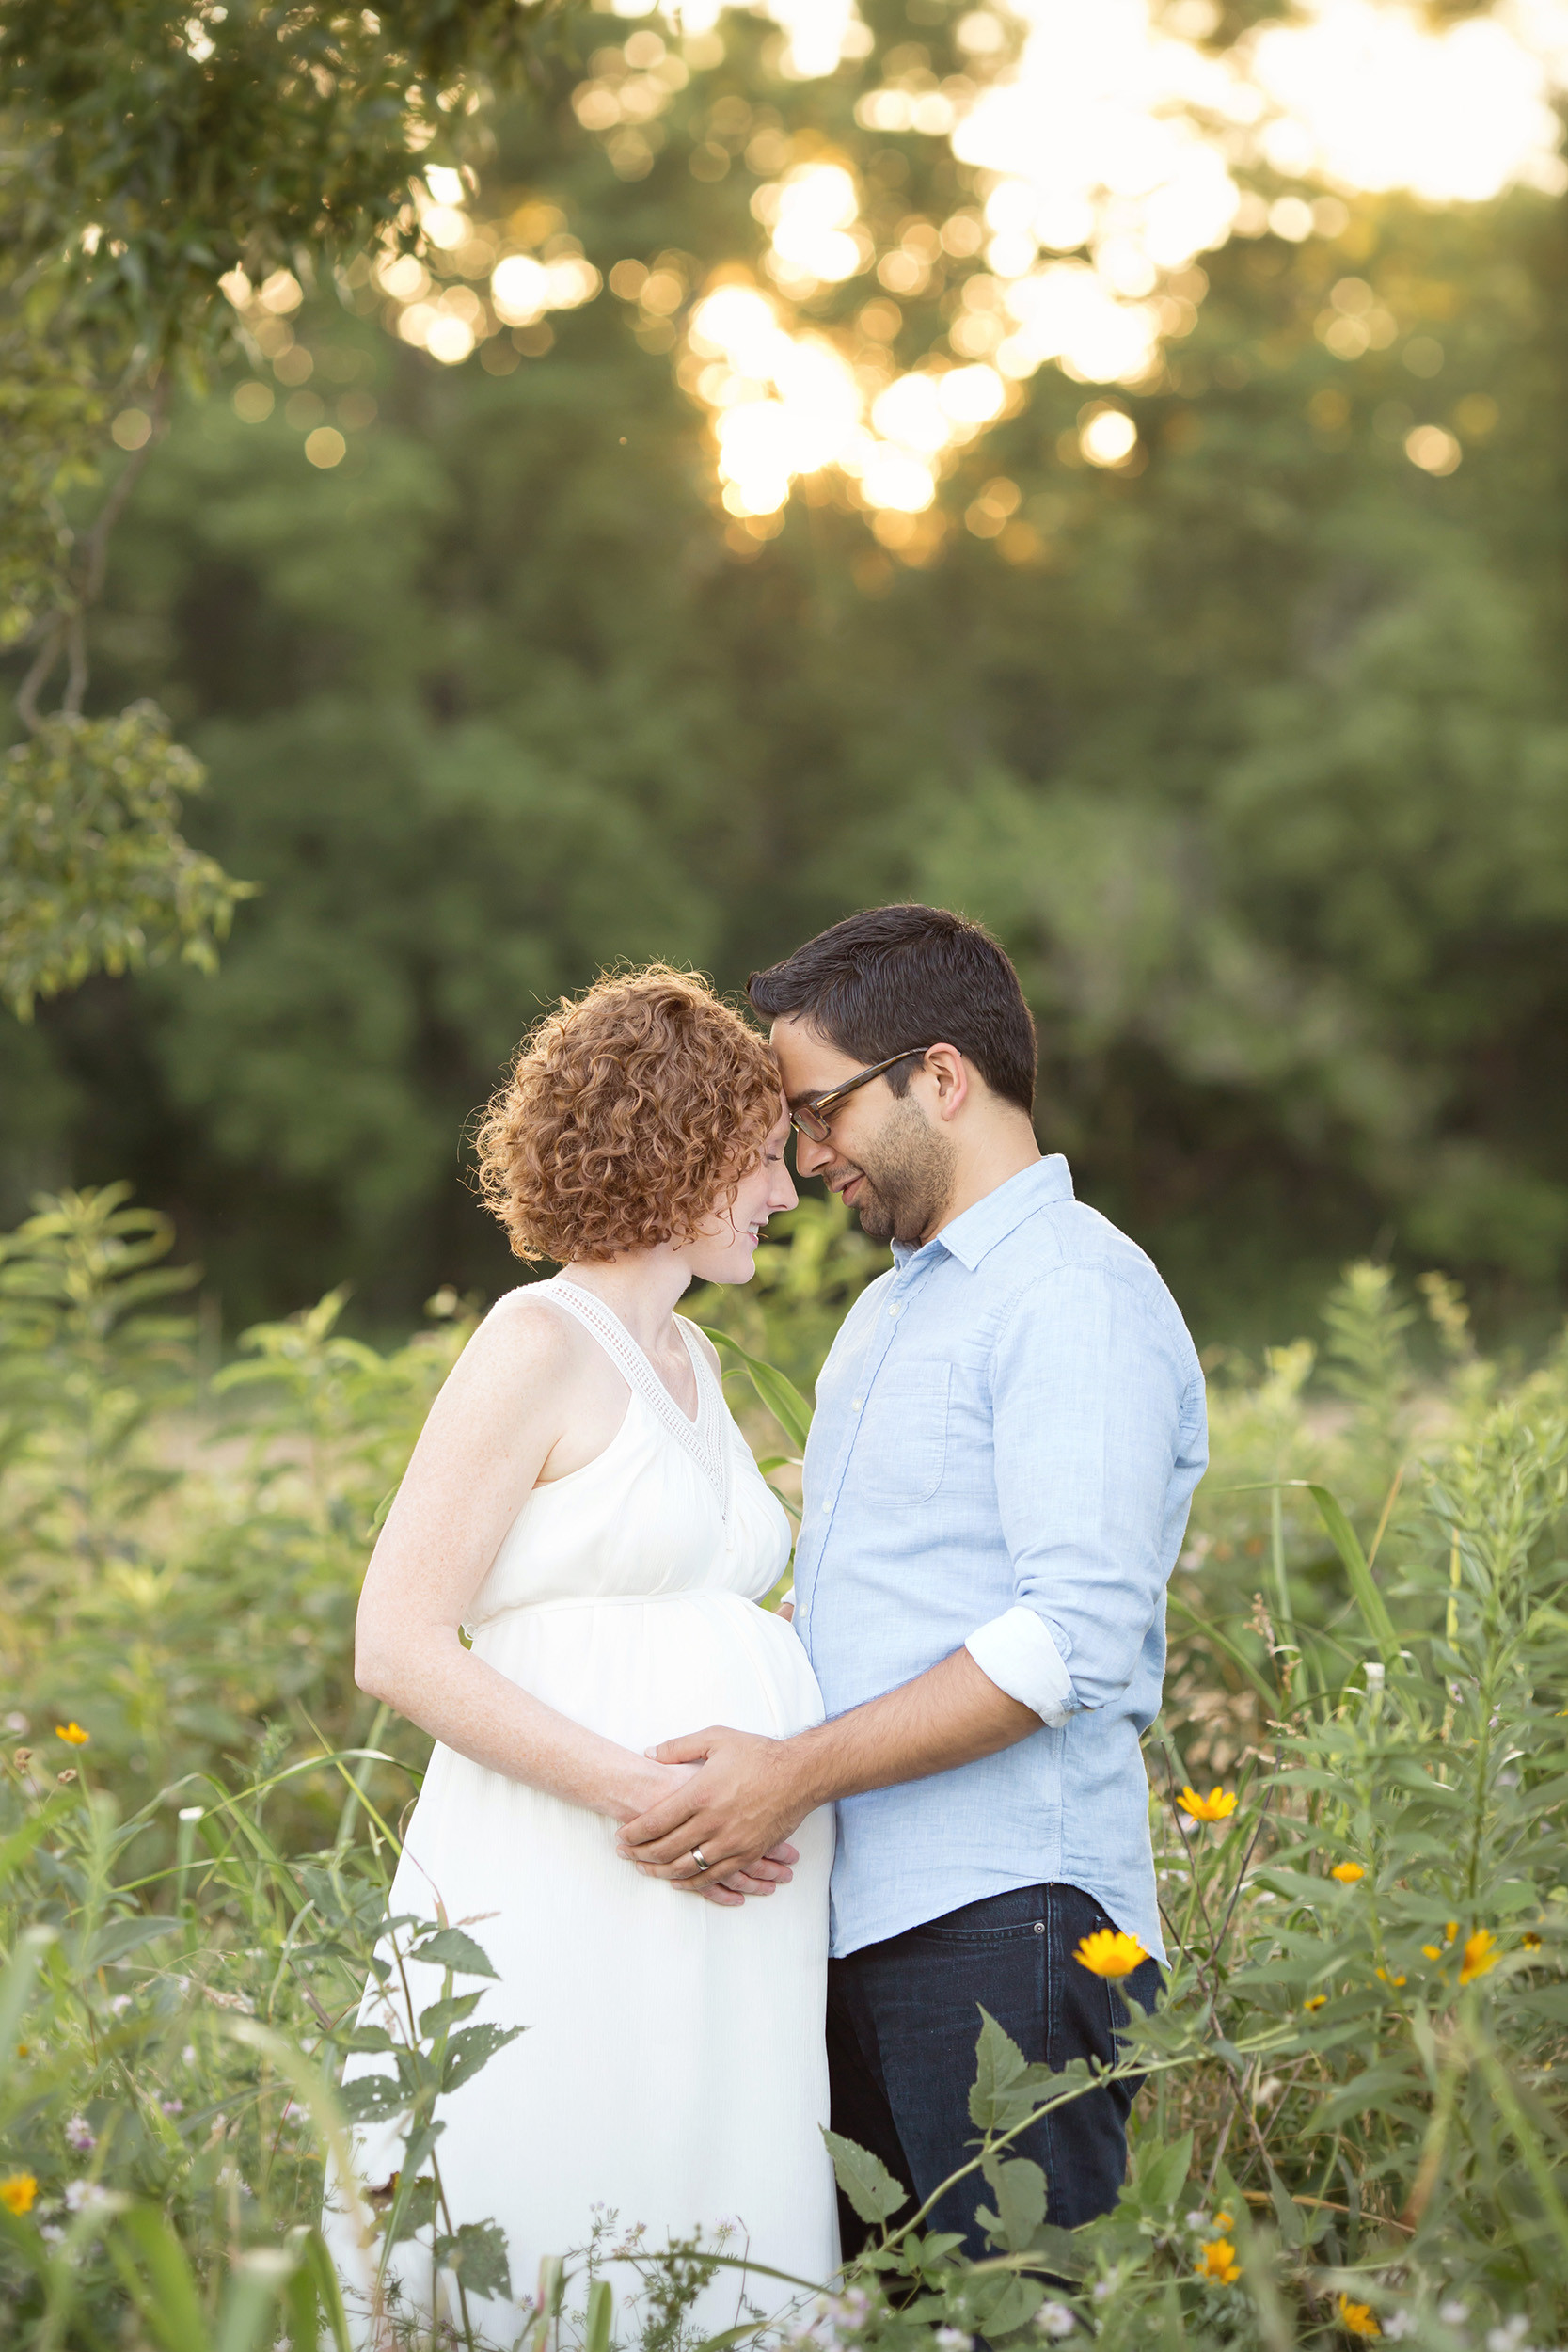 louisville ky newborn maternity and family photographer | julie brock photography | outdoor photo session louisville ky with husband and wife | field photography session